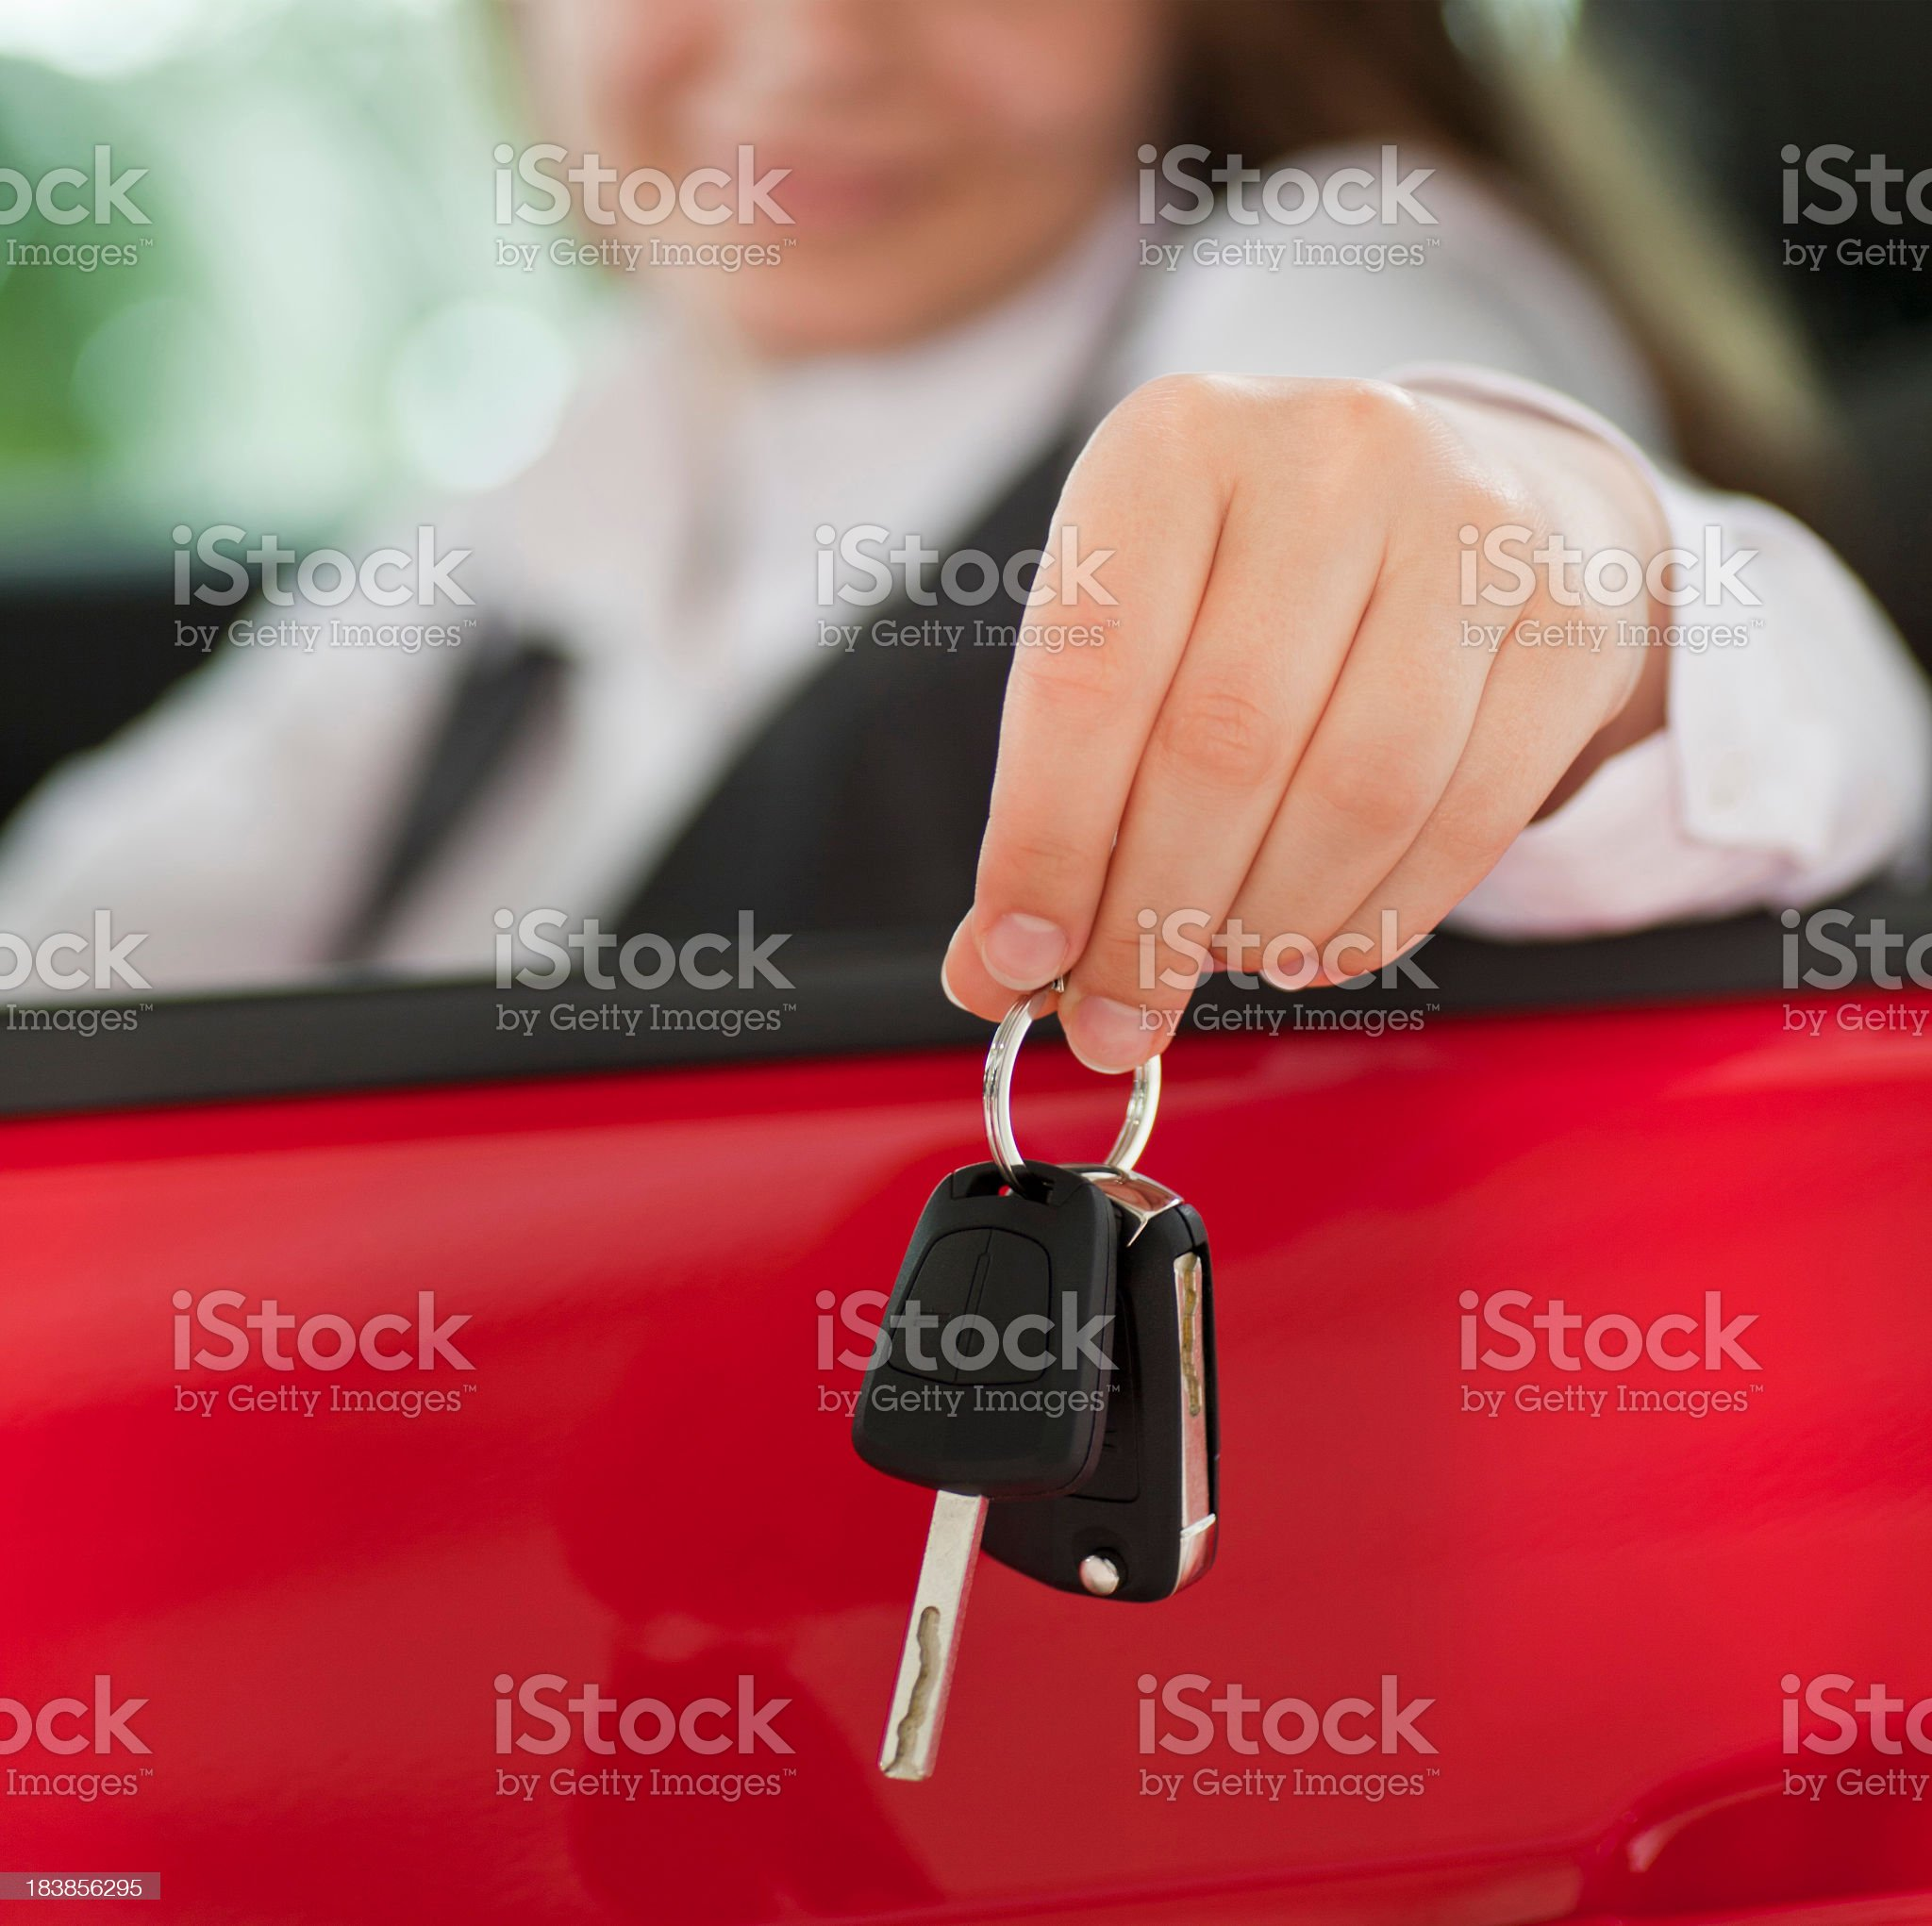 Woman seated in a car holding keys out the window royalty-free stock photo